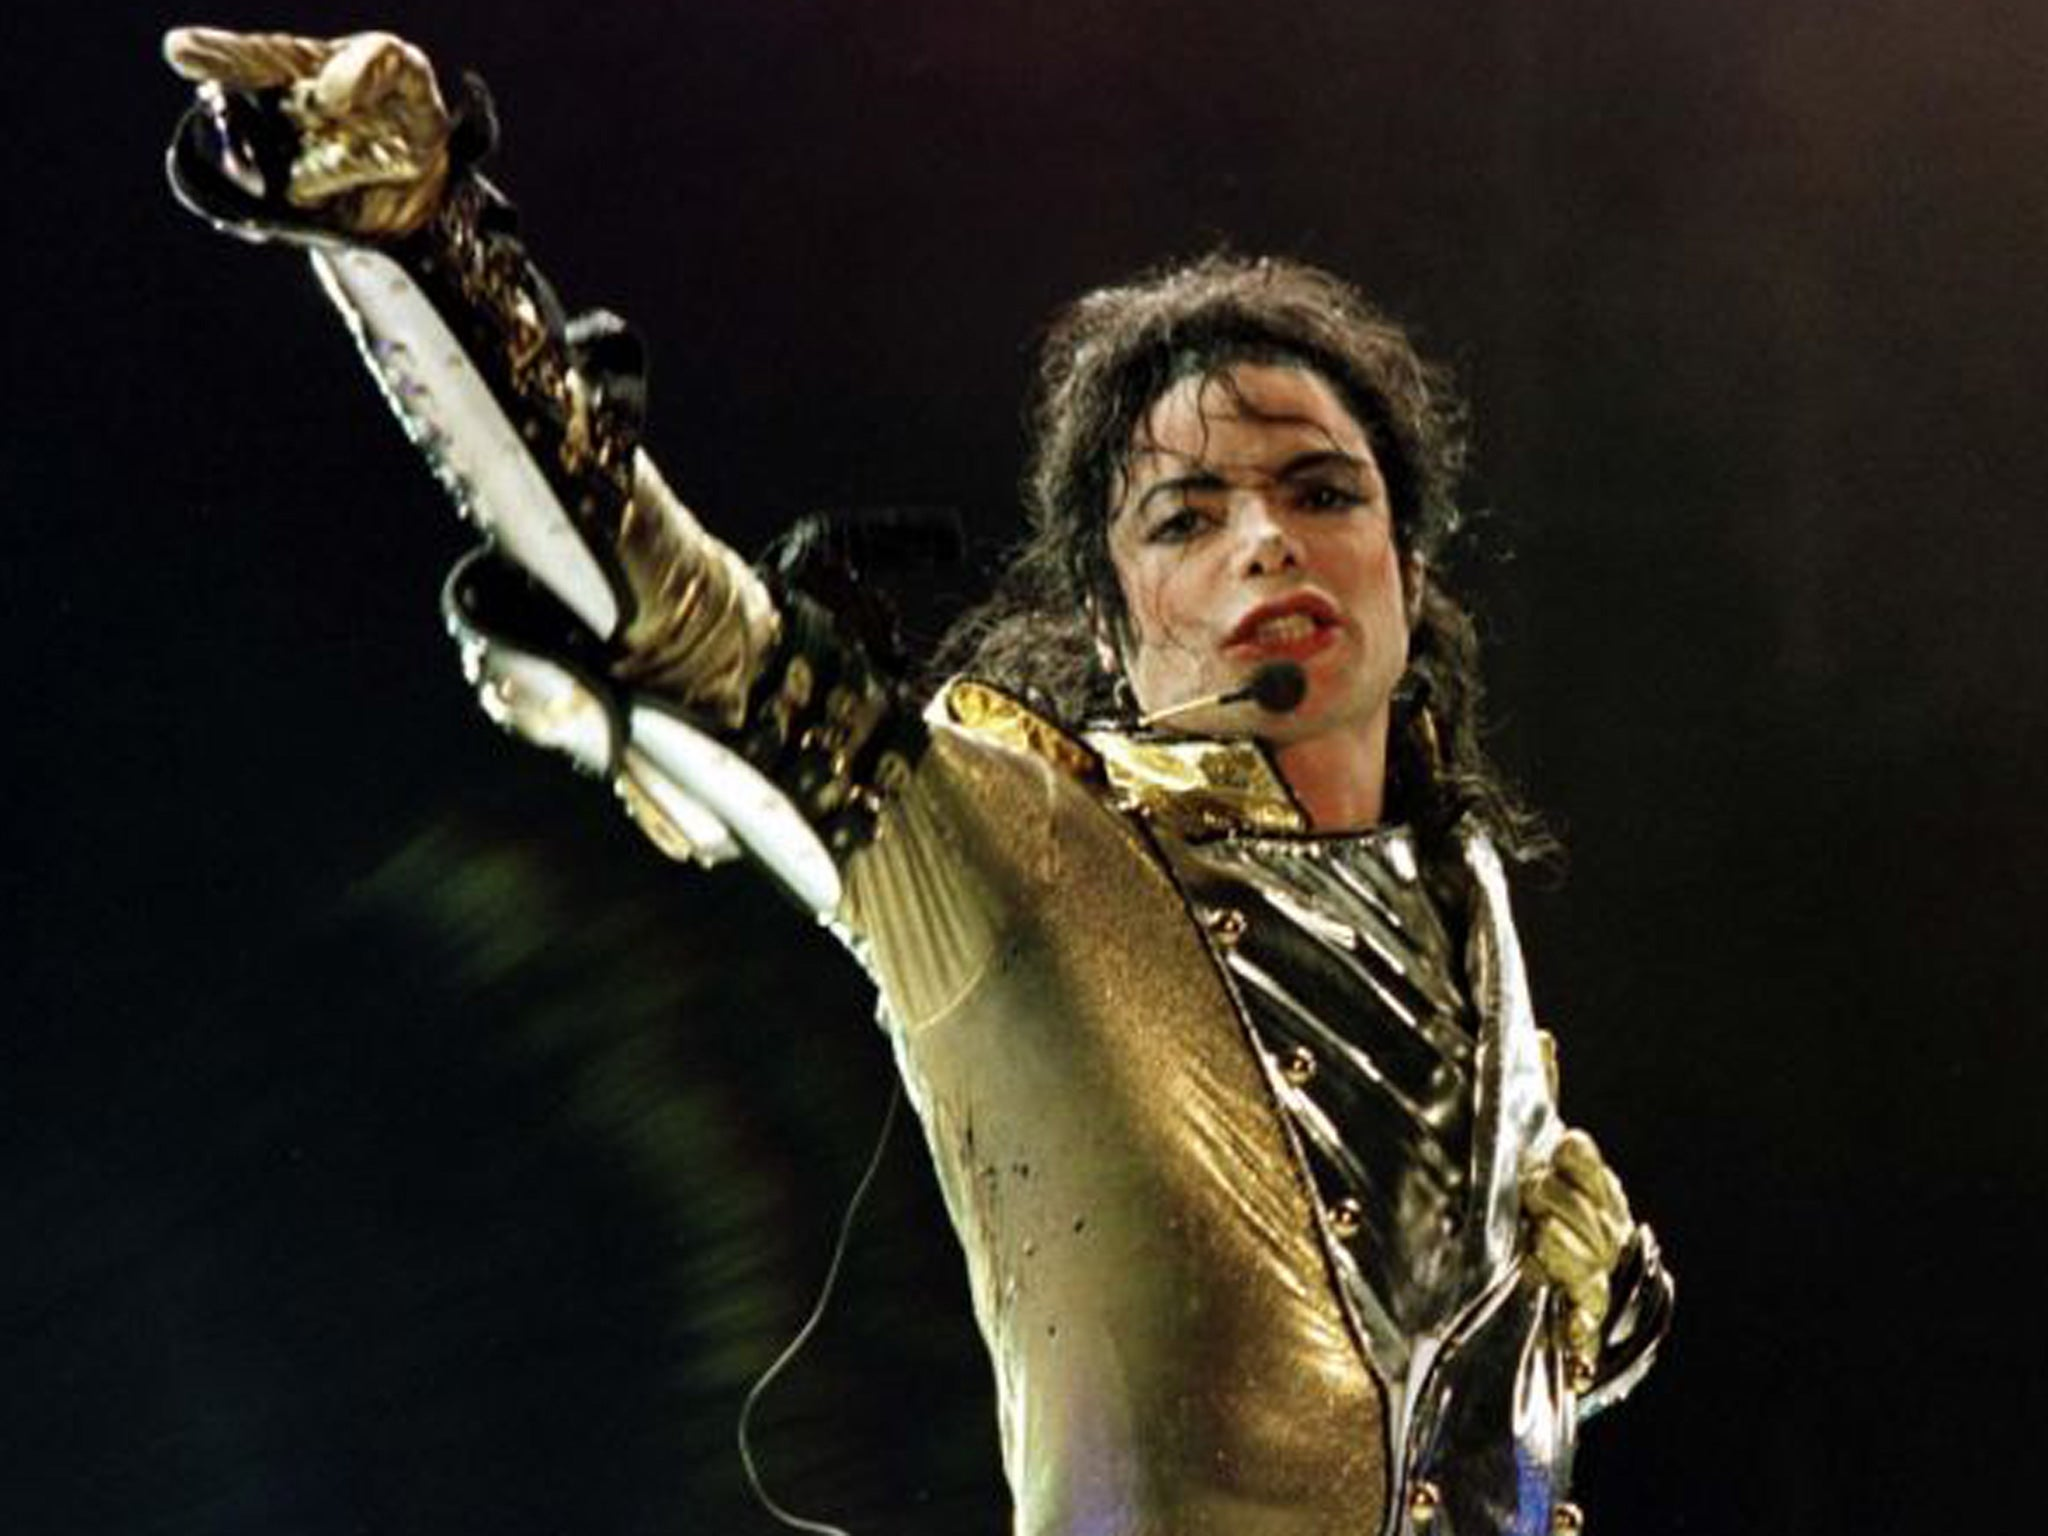 Even in death Jacko is still bigger than Bieber: Michael Jackson posthumously makes $600m